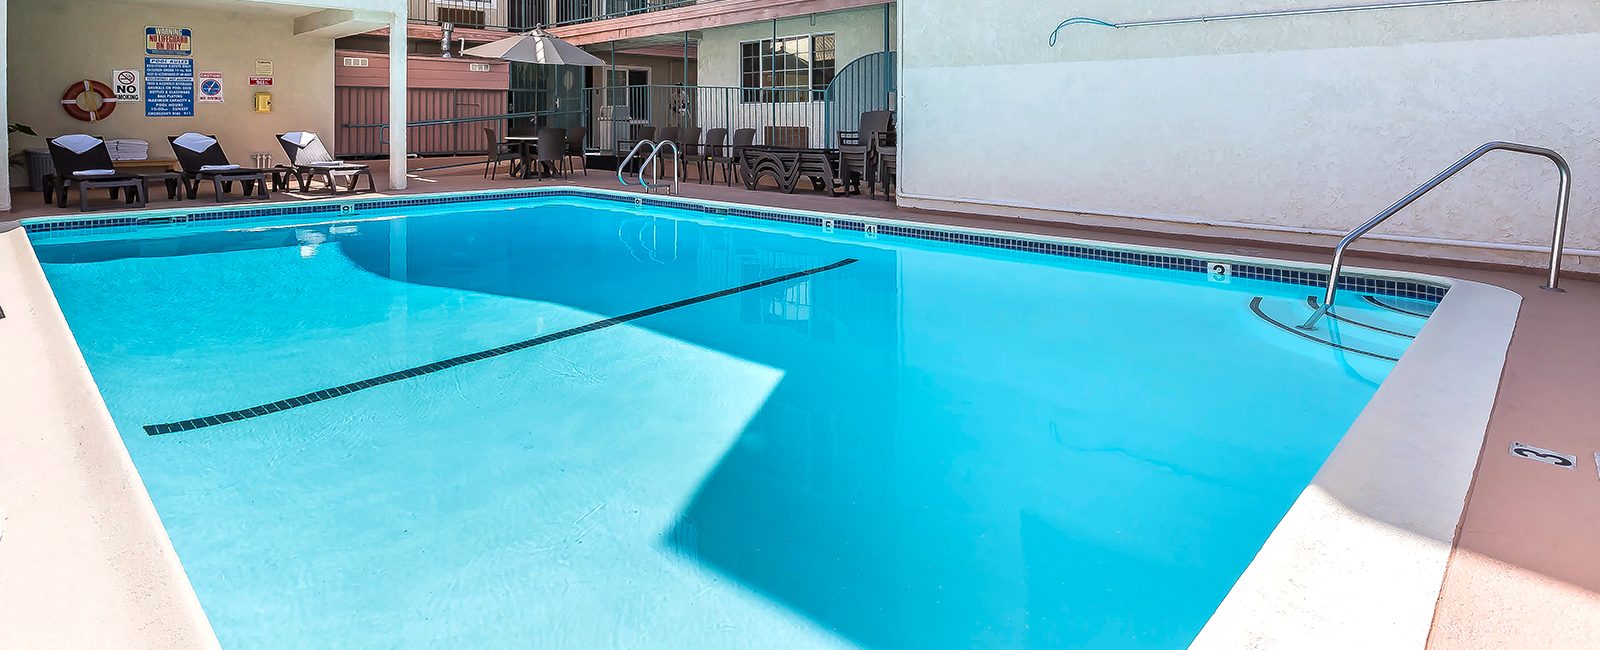 Amenities in Comfort Inn Santa Monica-West Los Angeles